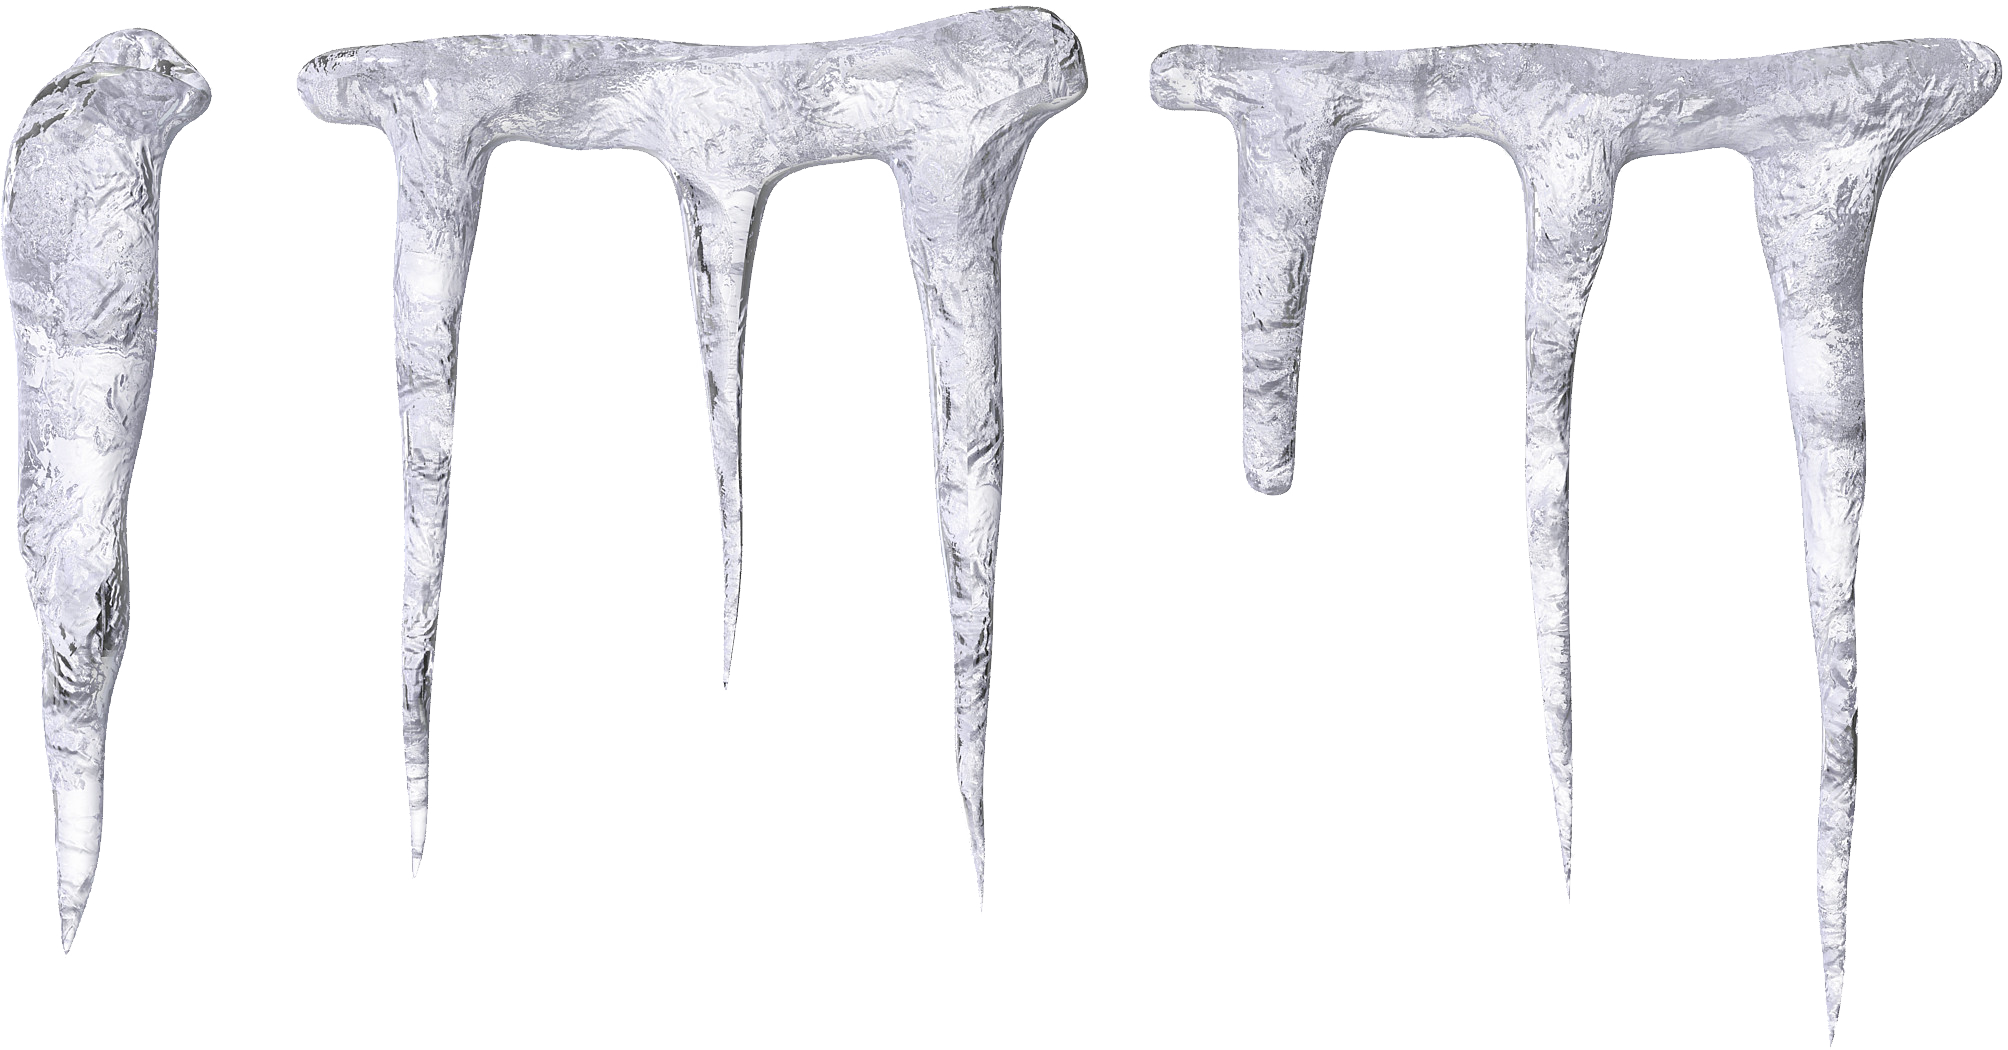 Icicle png images pluspng. Icicles transparent background picture freeuse